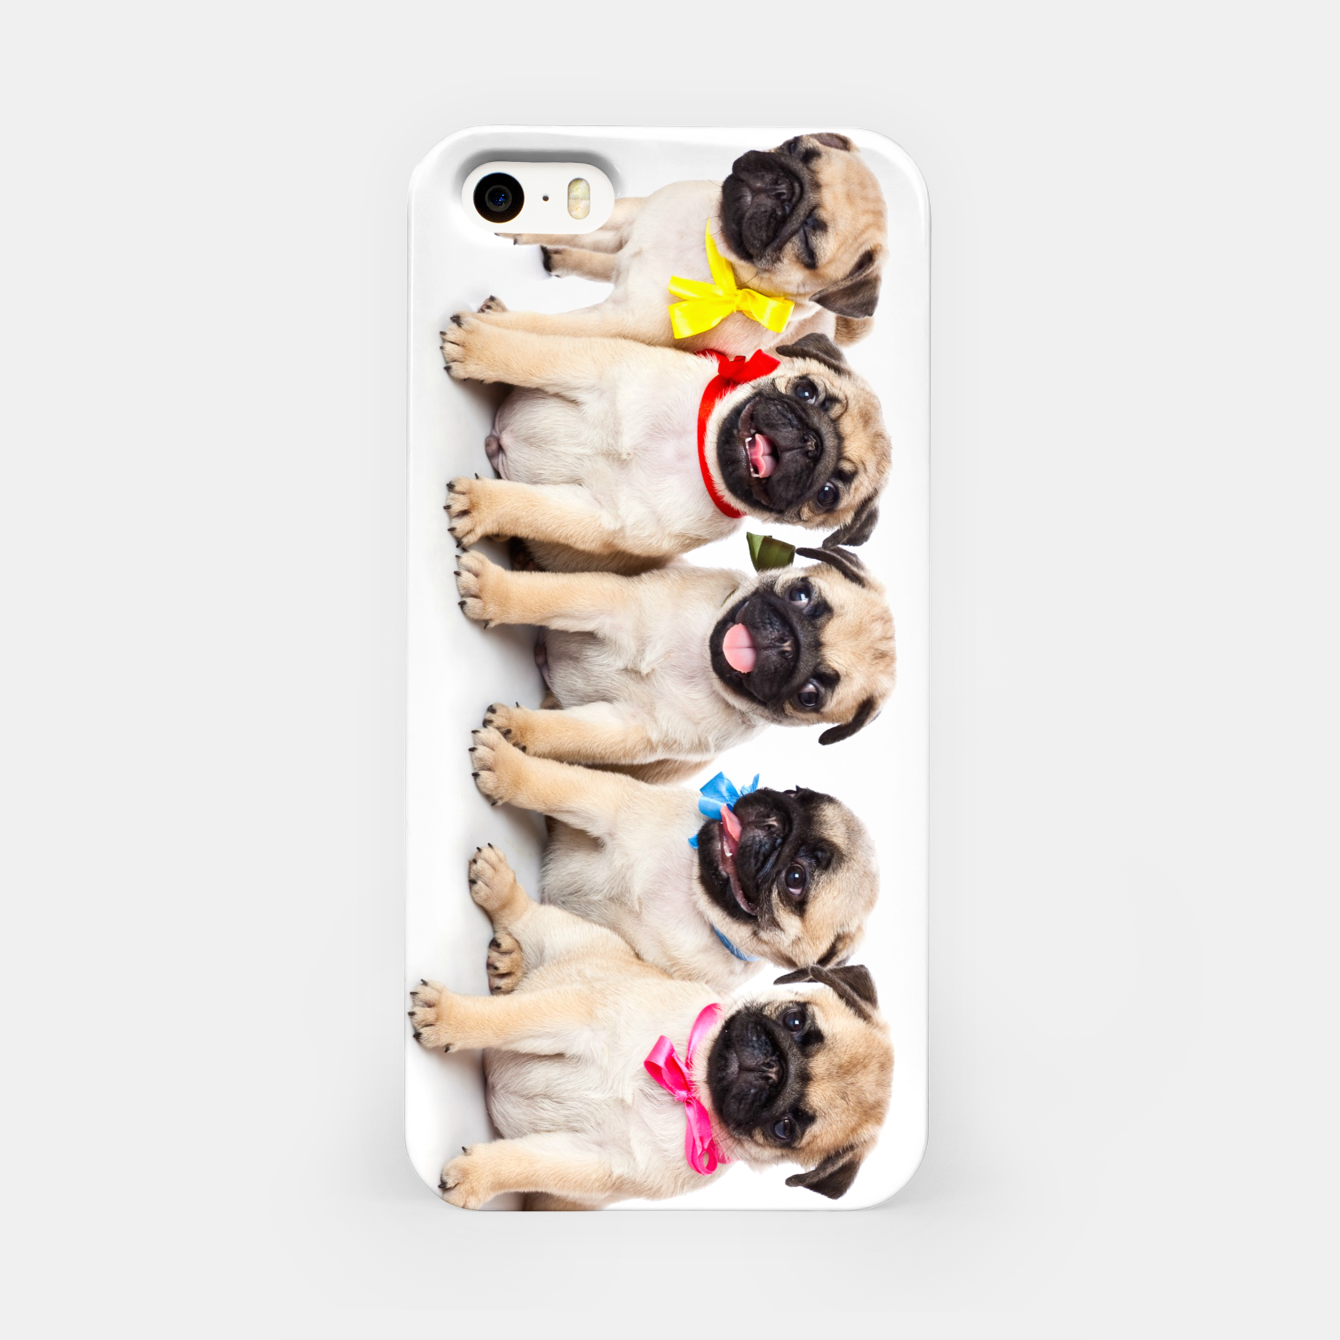 Foto Pug Puppies Cute  Accessories Gift iPhone Case - Live Heroes